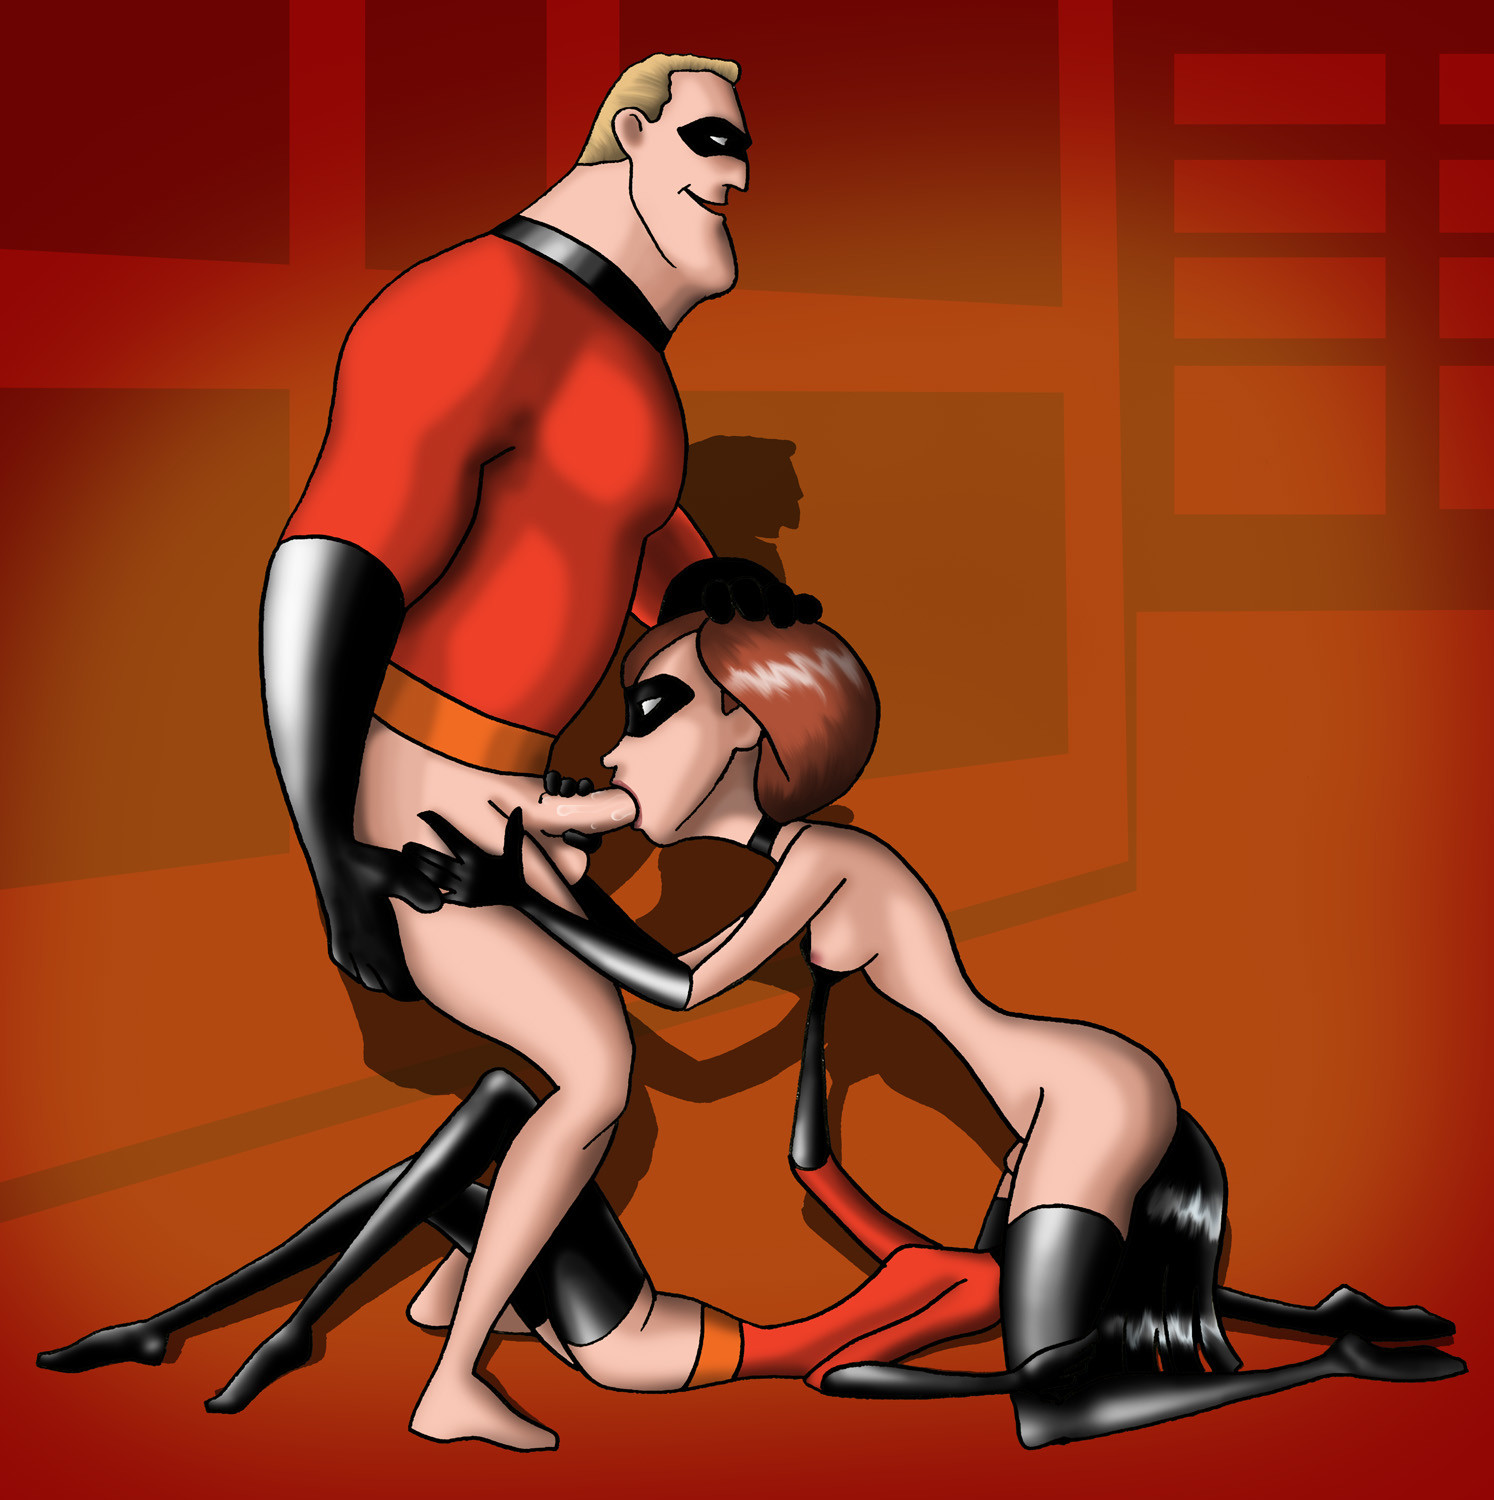 The incredibles sex games